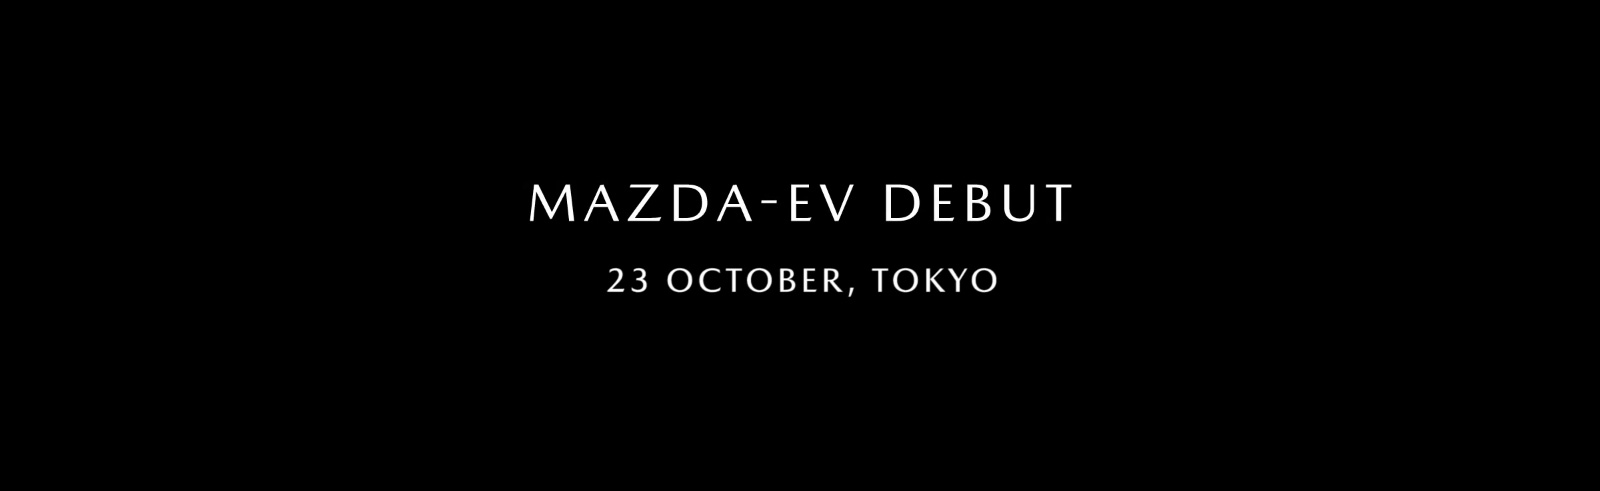 Confirmed: Mazda will unveil its first all-electric vehicle at the Tokyo Motor Show on October 23rd